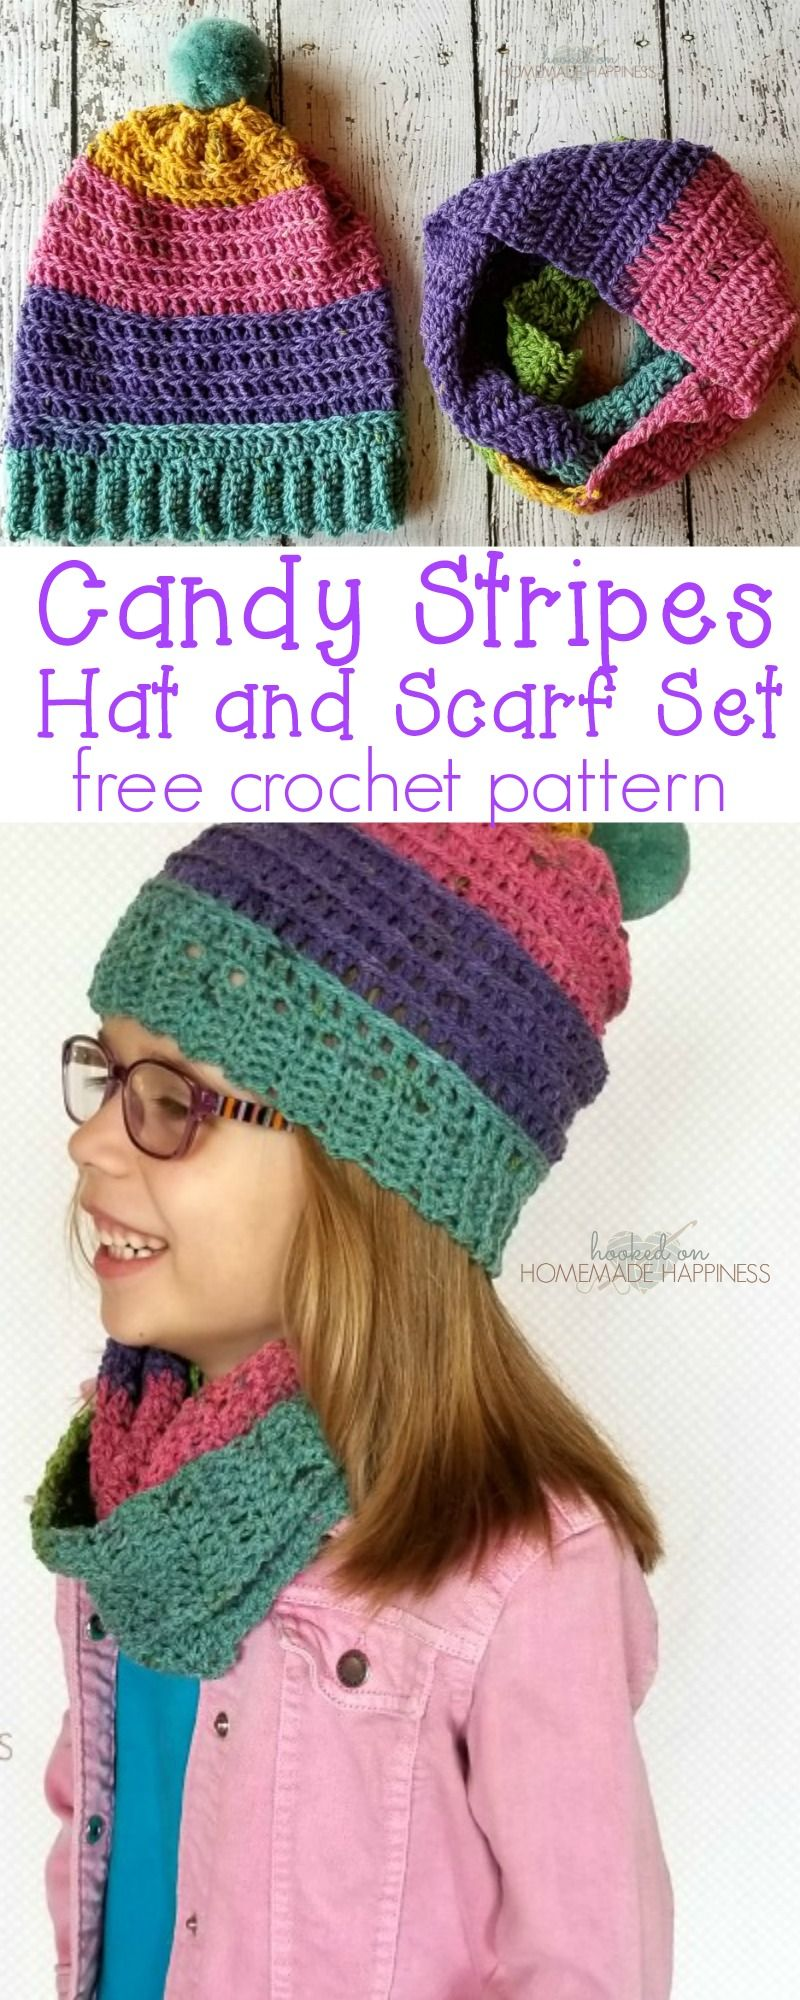 I Was Able To Make This Adorable Hat And Scarf Set With Just 1 Skein Of Yarn Have You Seen The New Caron Cu Crochet Kids Scarf Hat And Scarf Sets